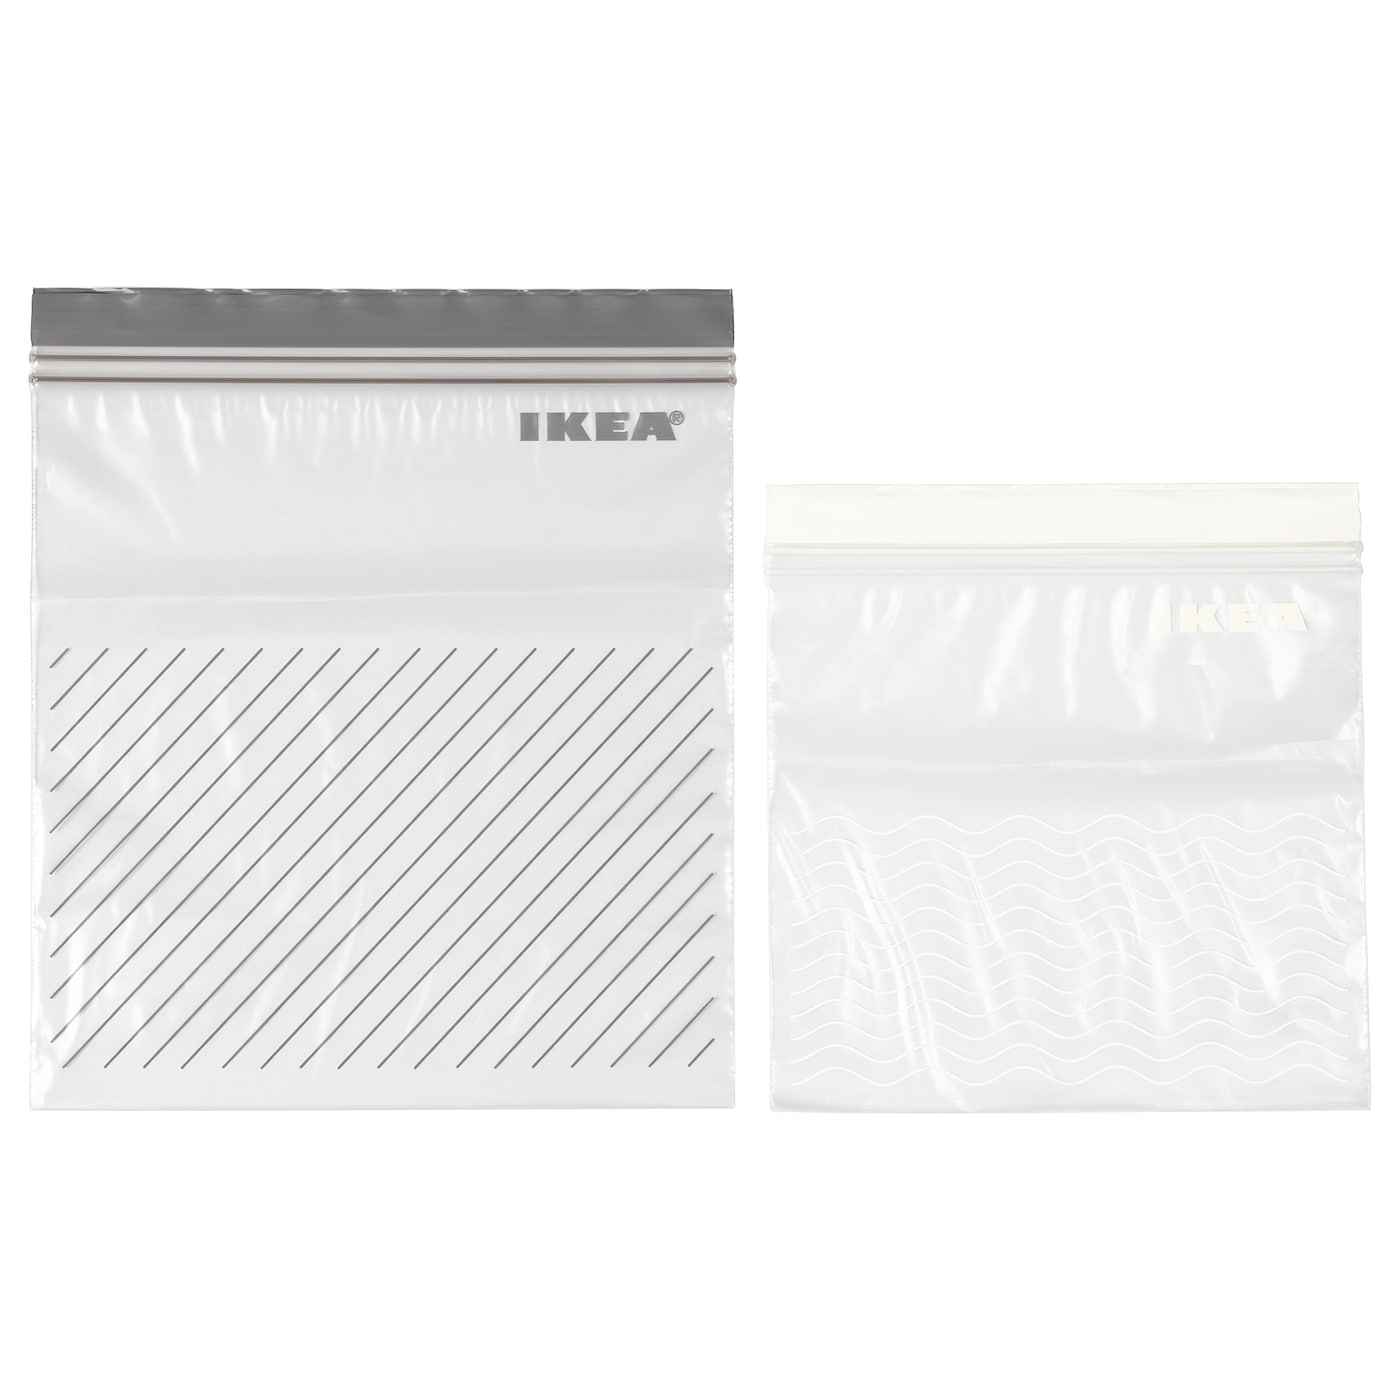 IKEA ISTAD resealable bag Can be used over and over again since it can be re-sealed.